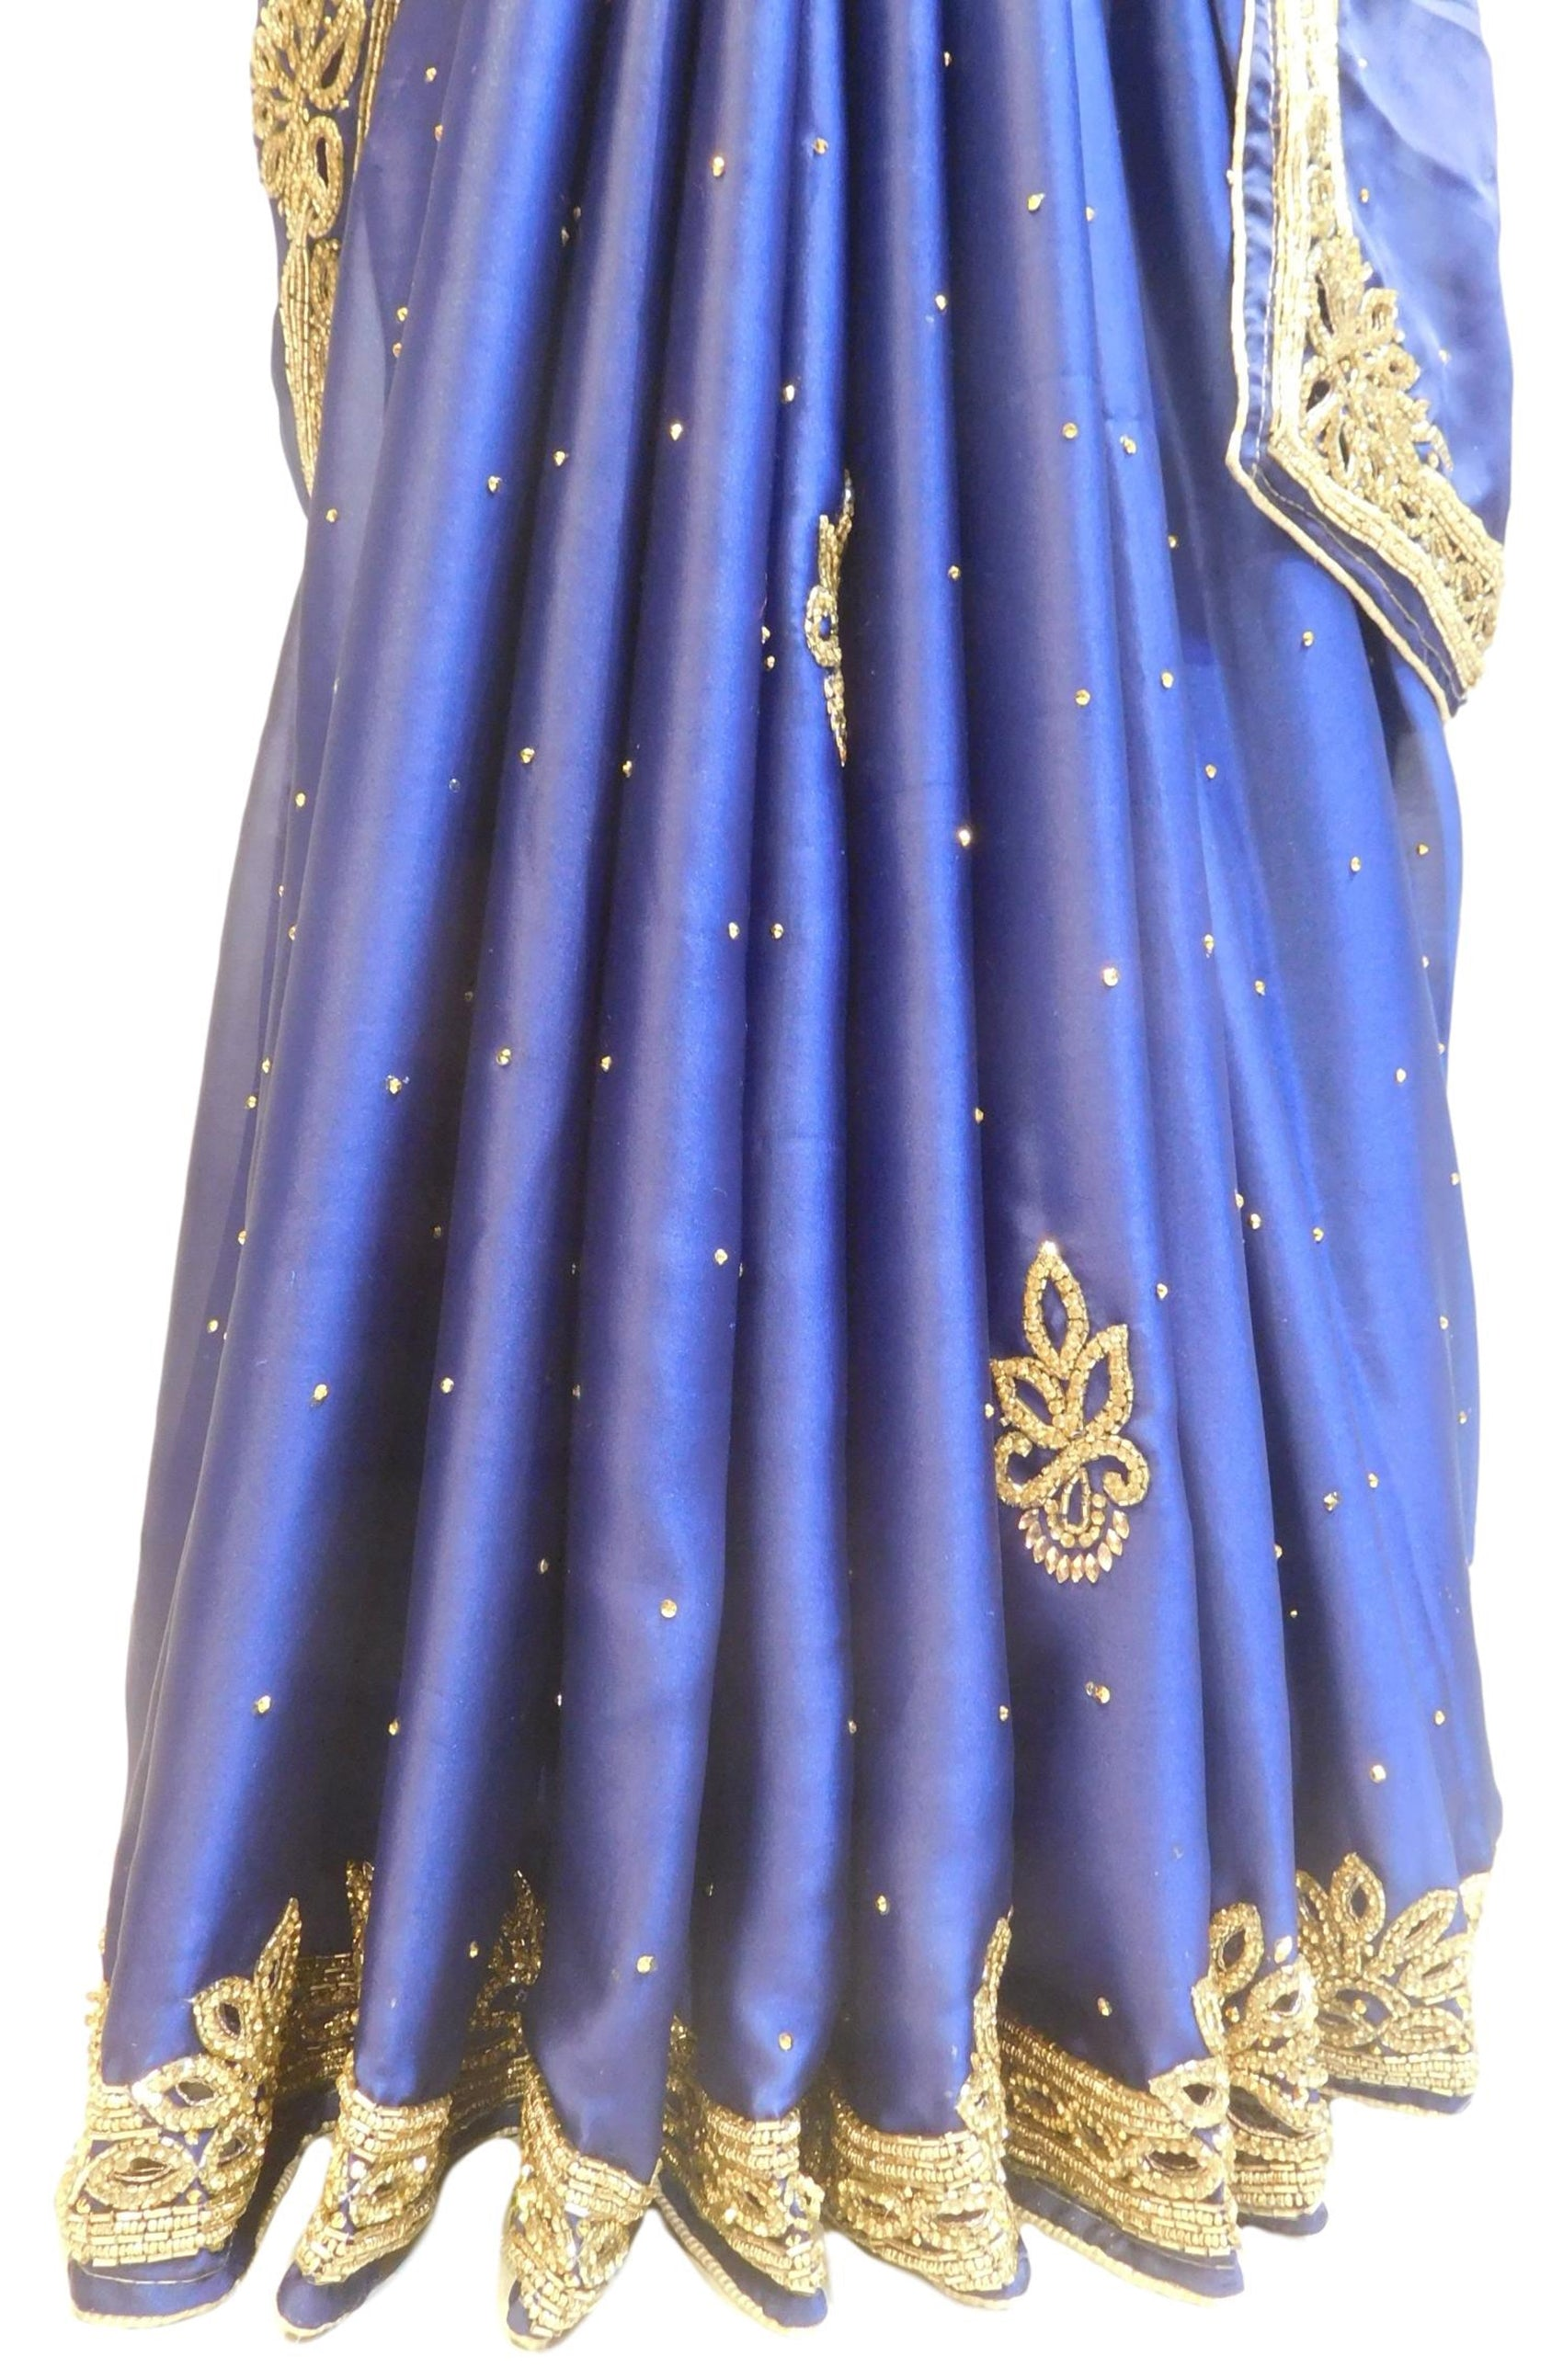 Blue Designer Wedding Partywear Silk Beads Stone Cutdana Hand Embroidery Work Bridal Saree Sari E095